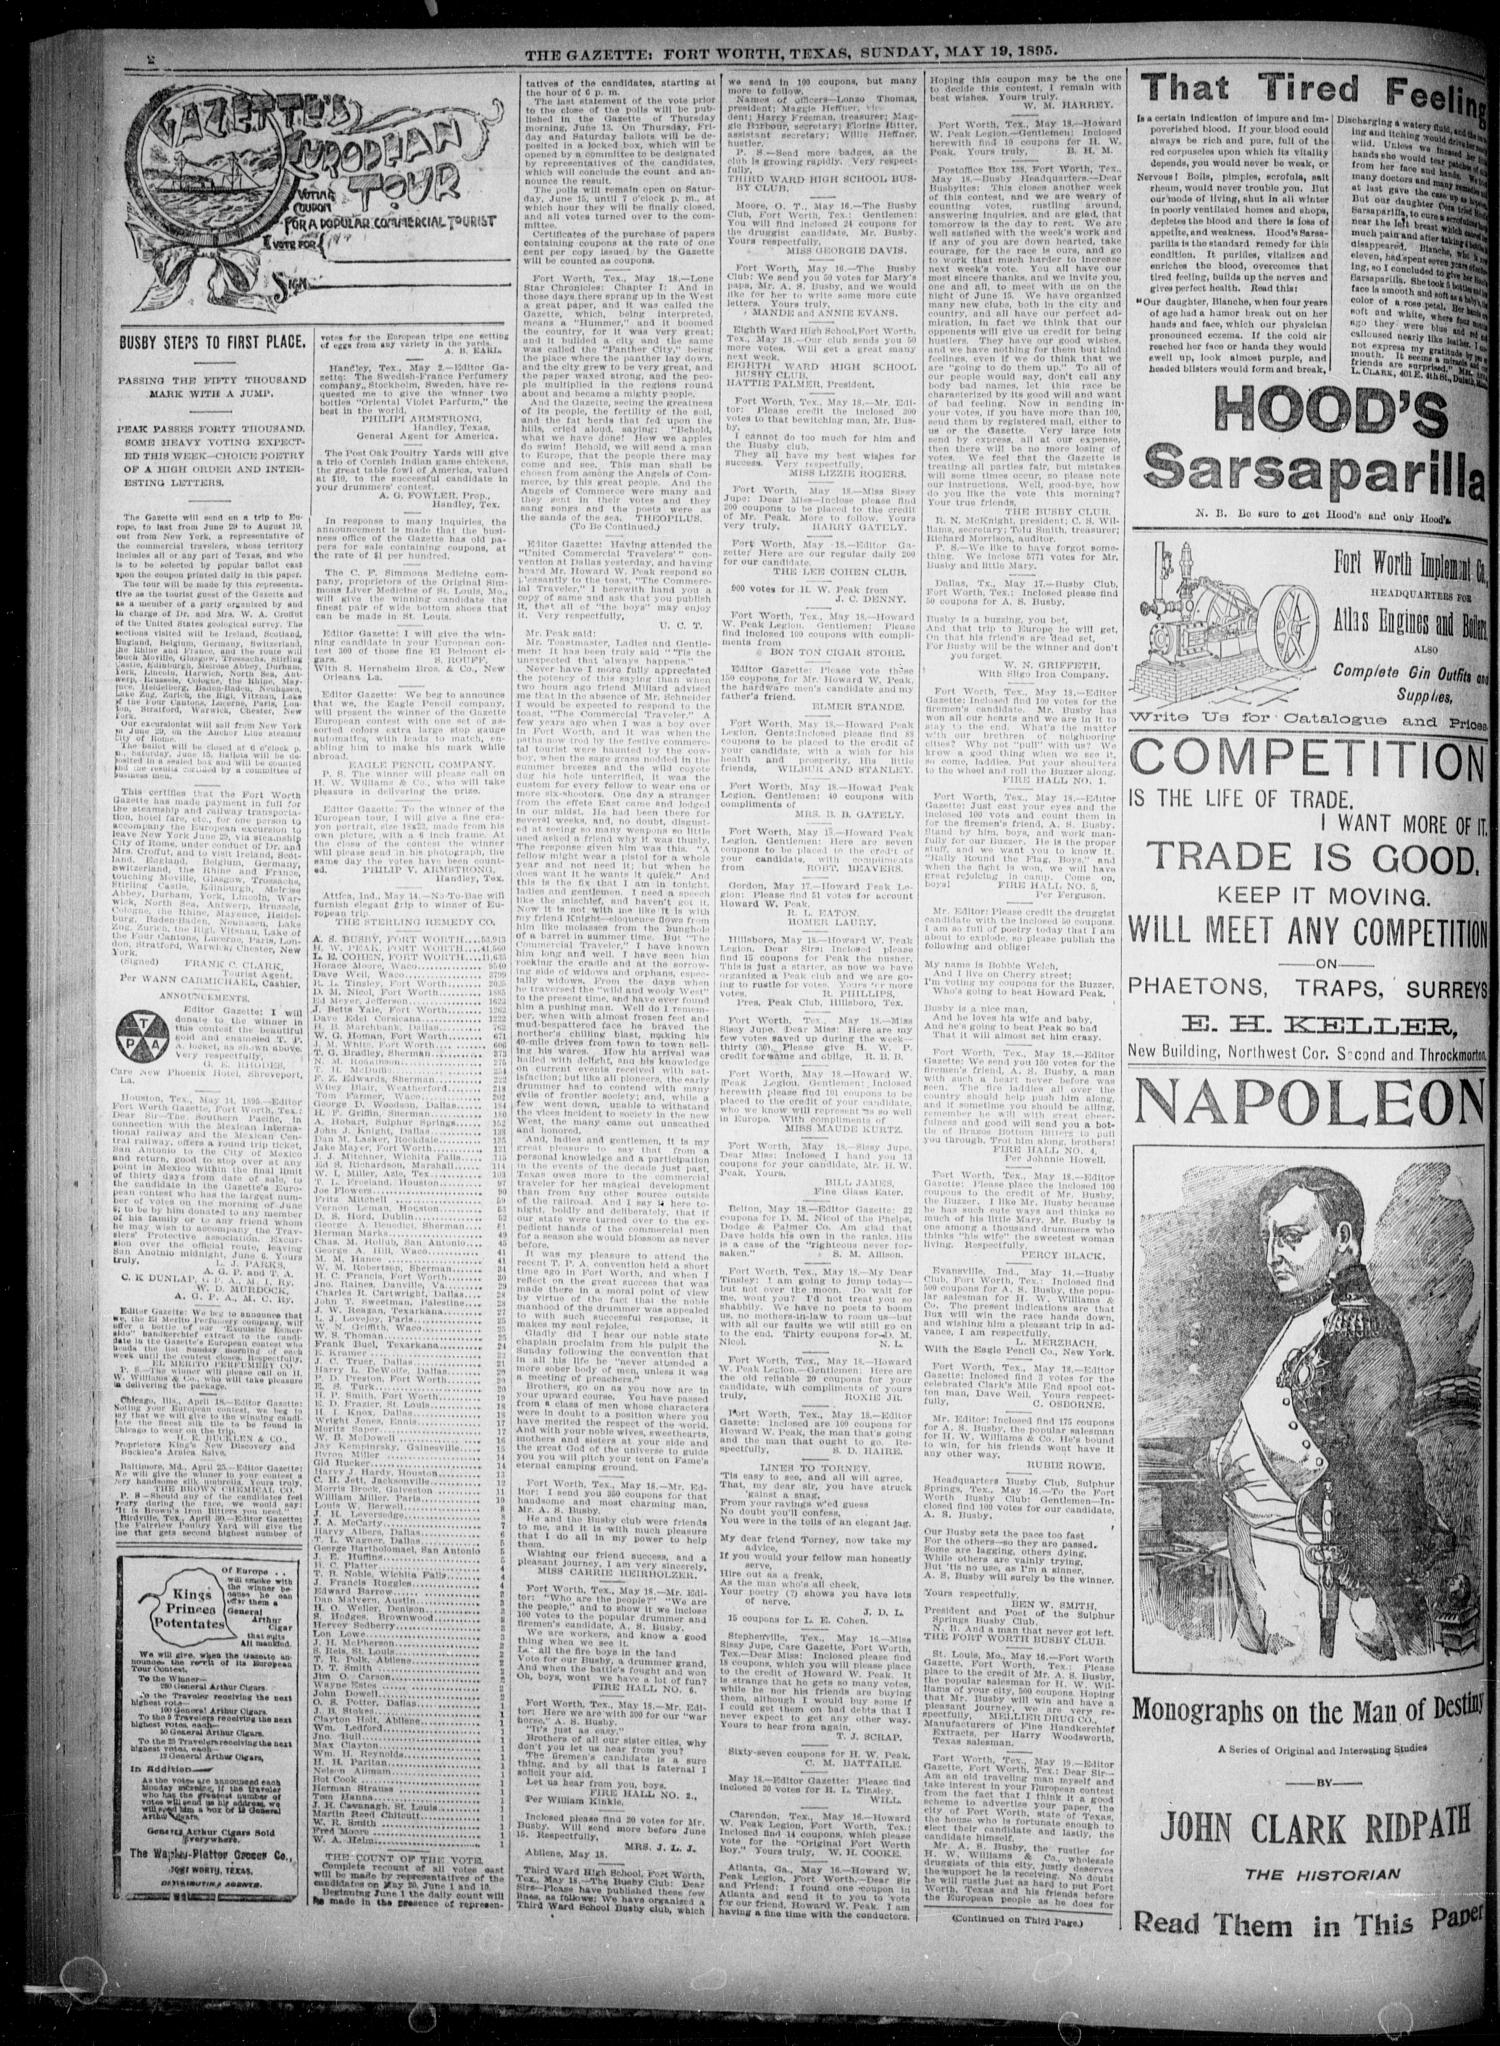 Fort Worth Gazette  (Fort Worth, Tex ), Vol  19, No  175, Ed